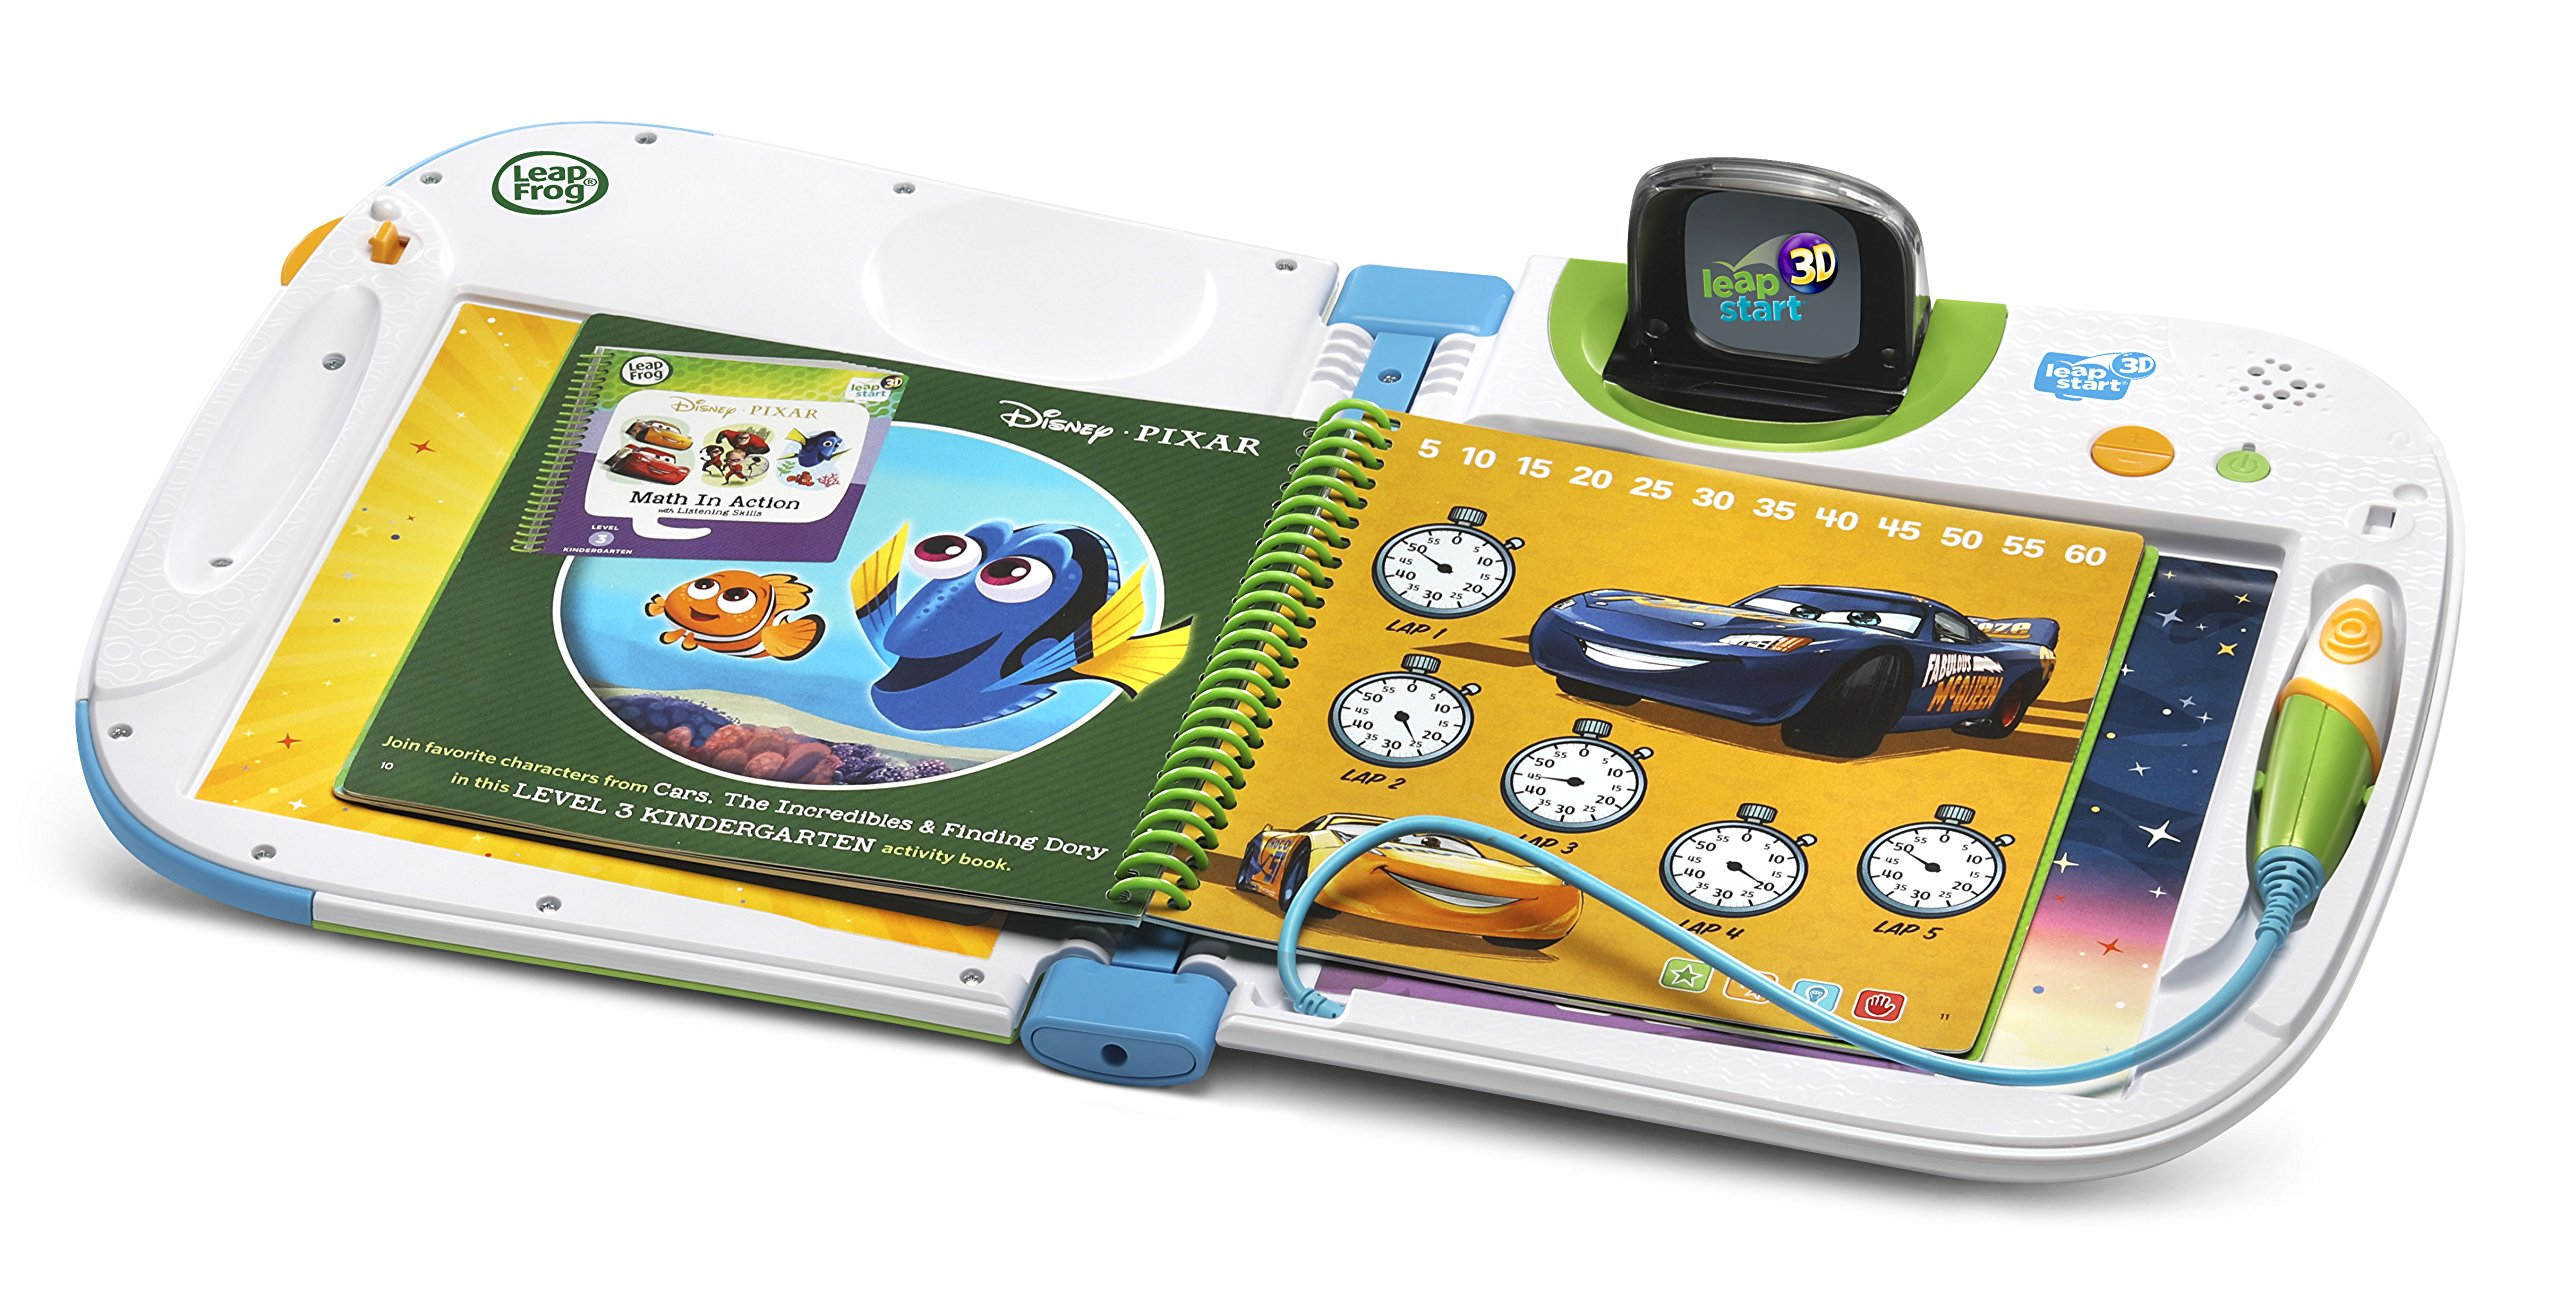 LeapFrog LeapStart 3D Interactive Learning System (Frustration Free Packaging), Green by LeapFrog (Image #9)